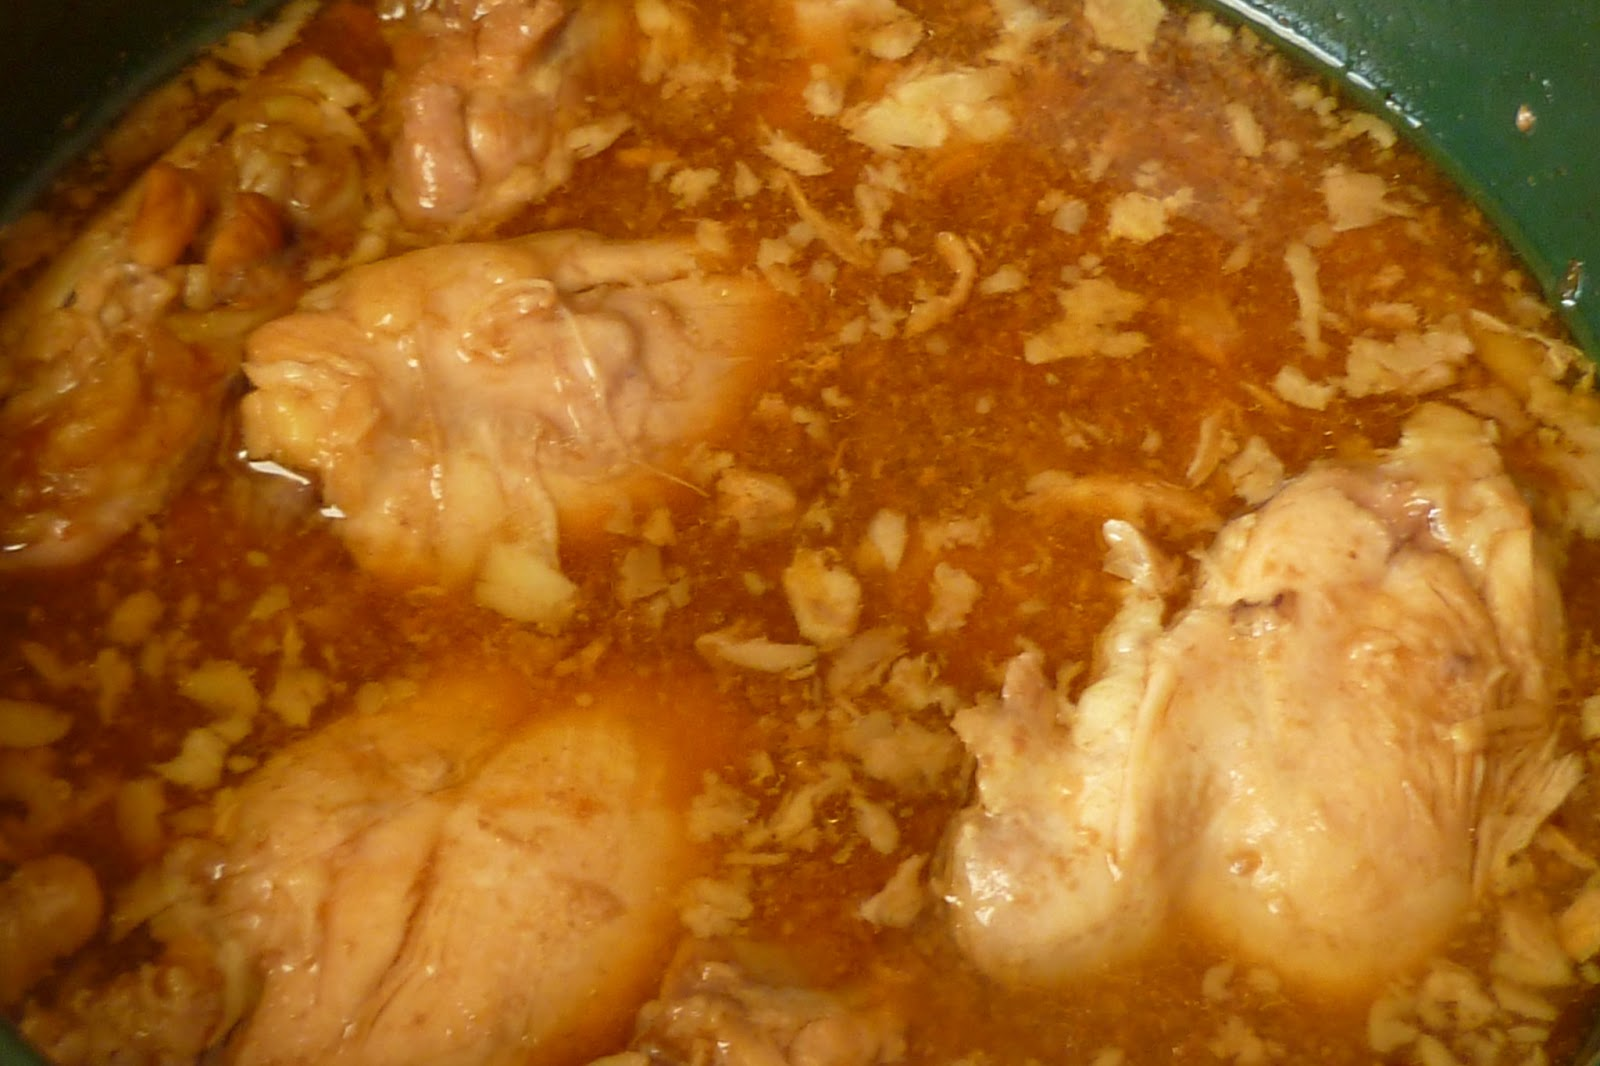 Pineapple Chicken - made March 8, 2013, recipe found on pinterest